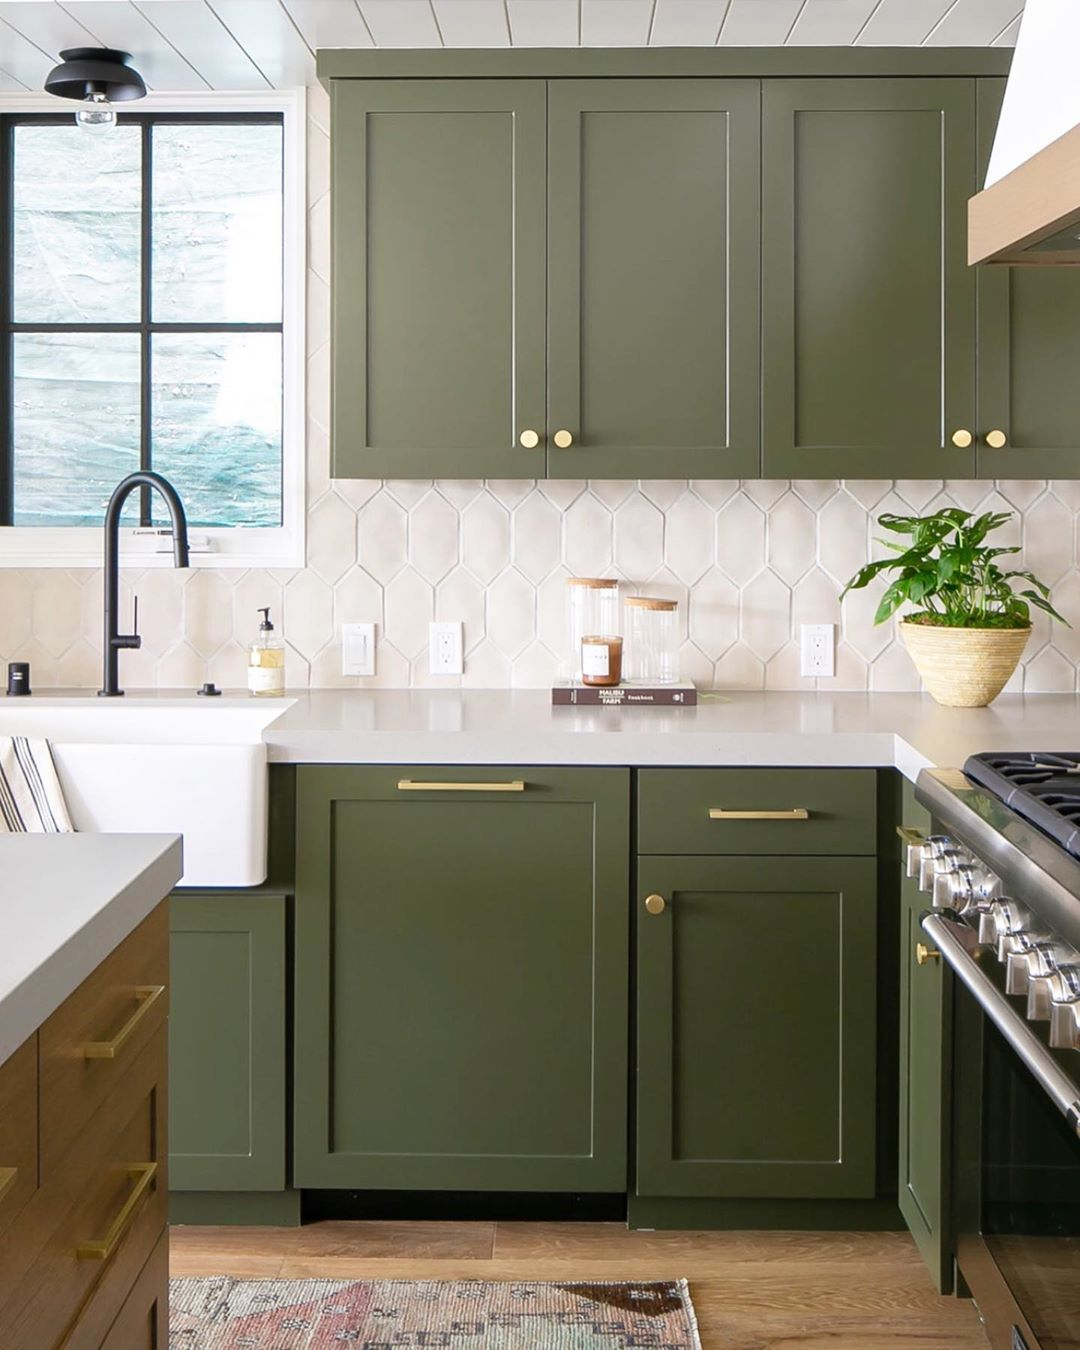 Usually The Island Is The Focal Point Of The Kitchen But In This Case I Can T Take My Eyes Off T In 2020 Bold Kitchen Green Kitchen Cabinets Painting Kitchen Cabinets